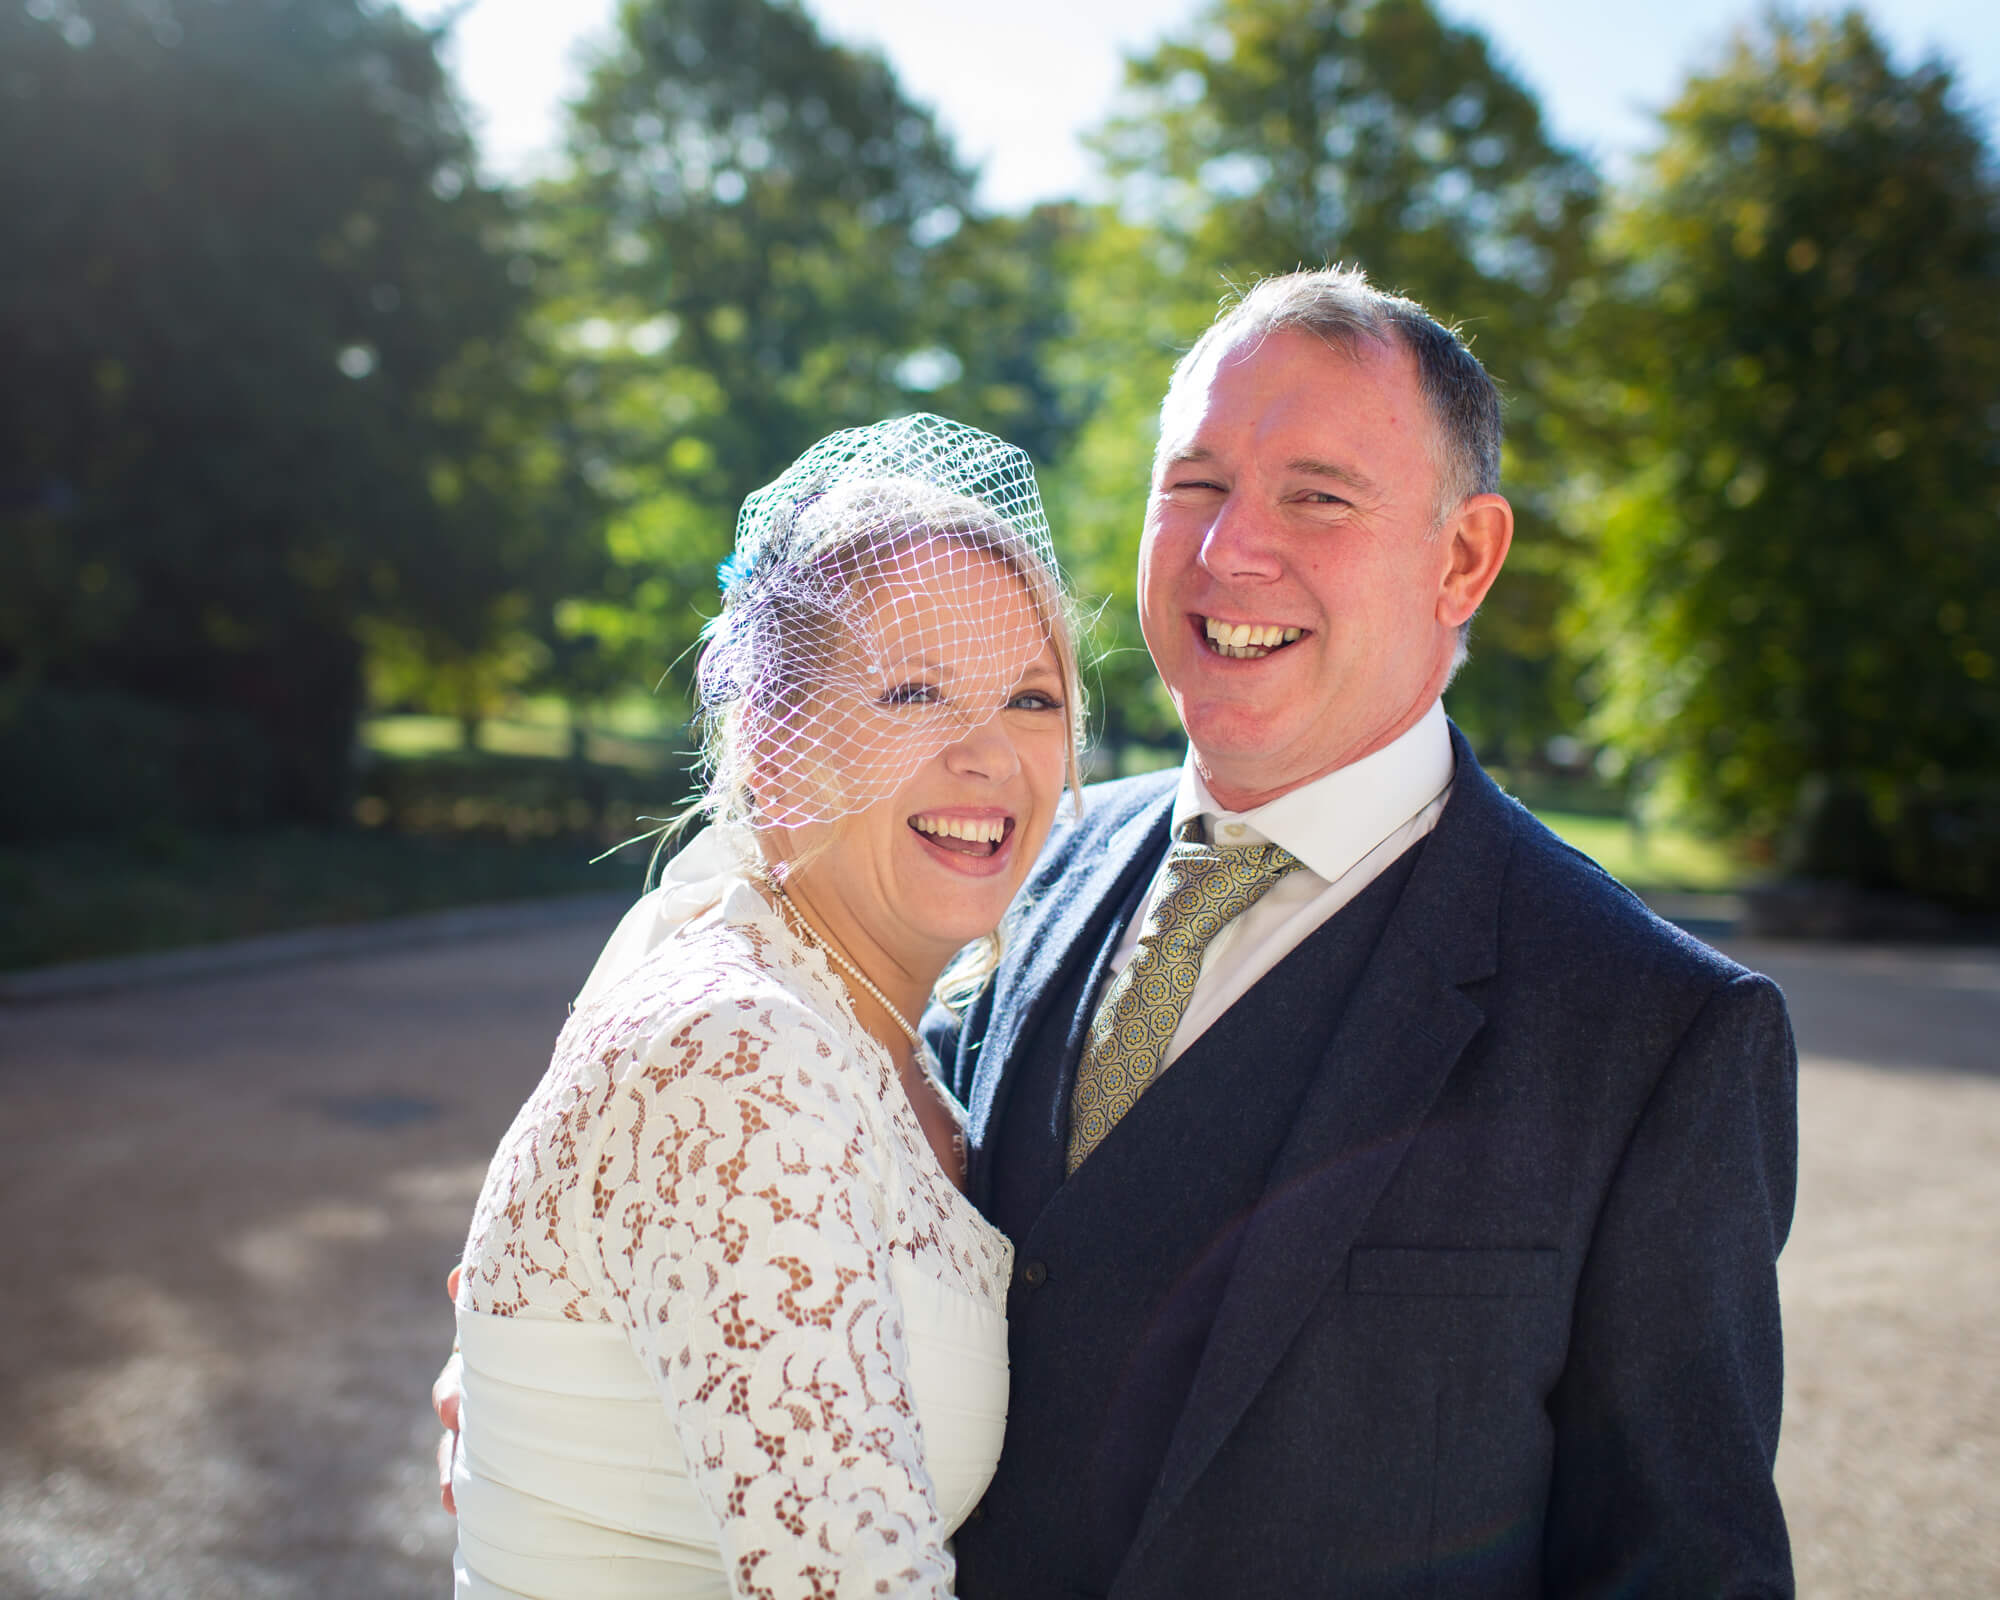 Wedding photography at Salisbury registry office, Wiltshire